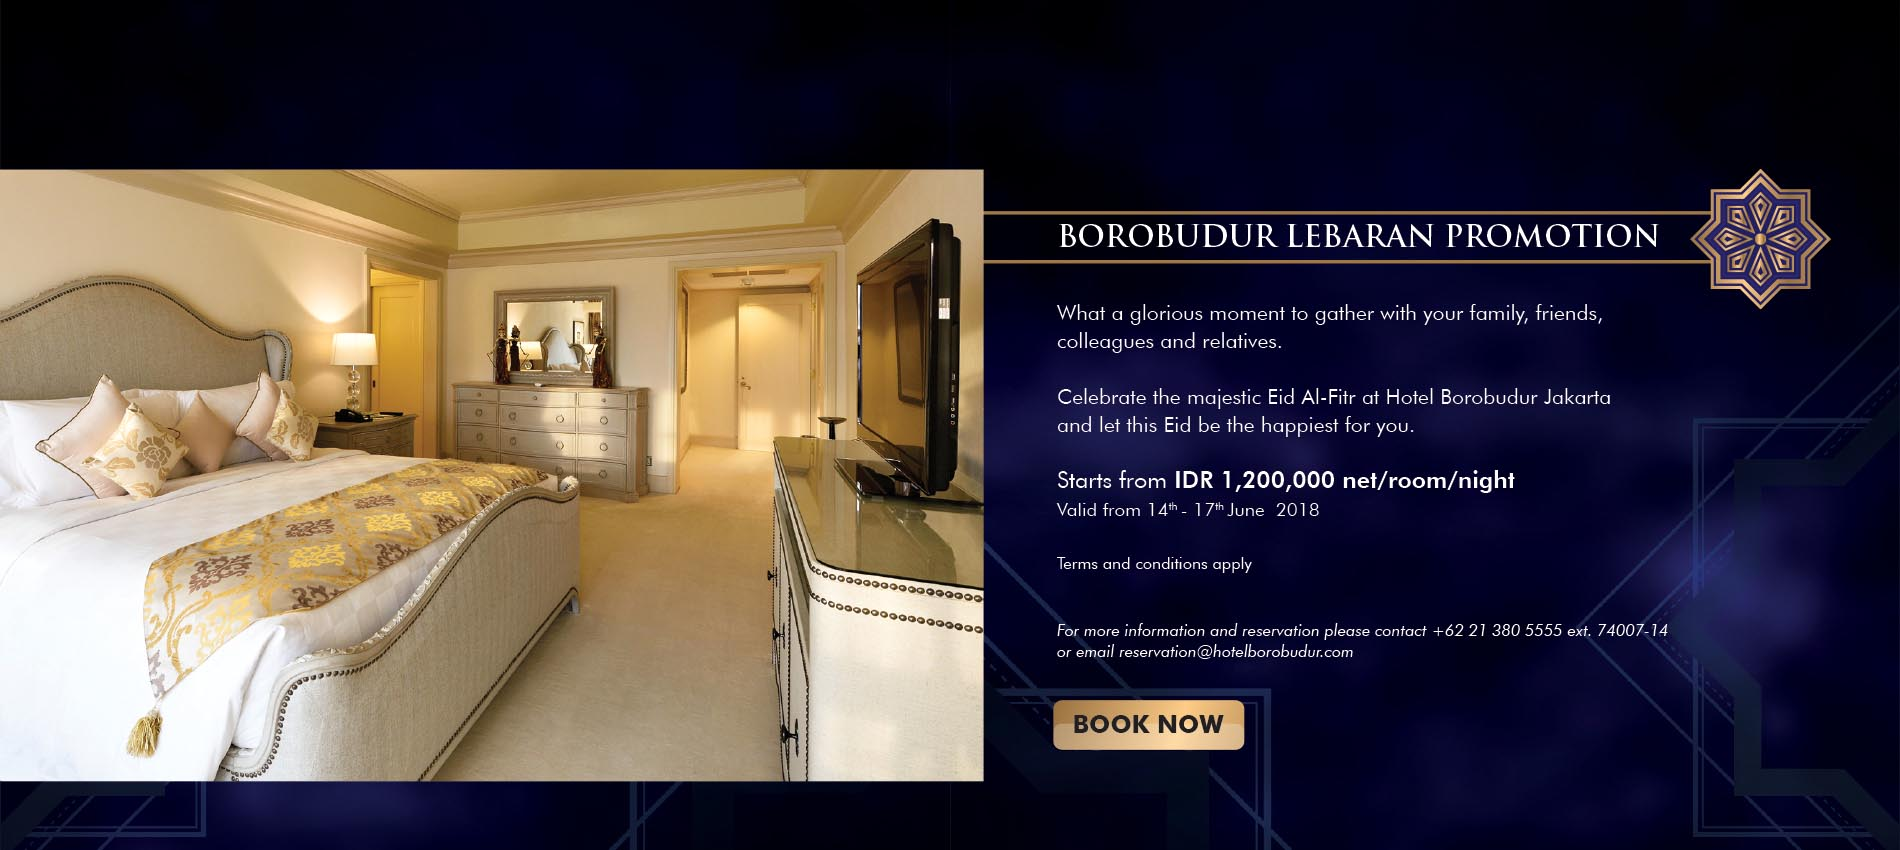 Home Luxury Borobudur Hotel Jakarta Discovery Hotels Resorts Previous Dunia